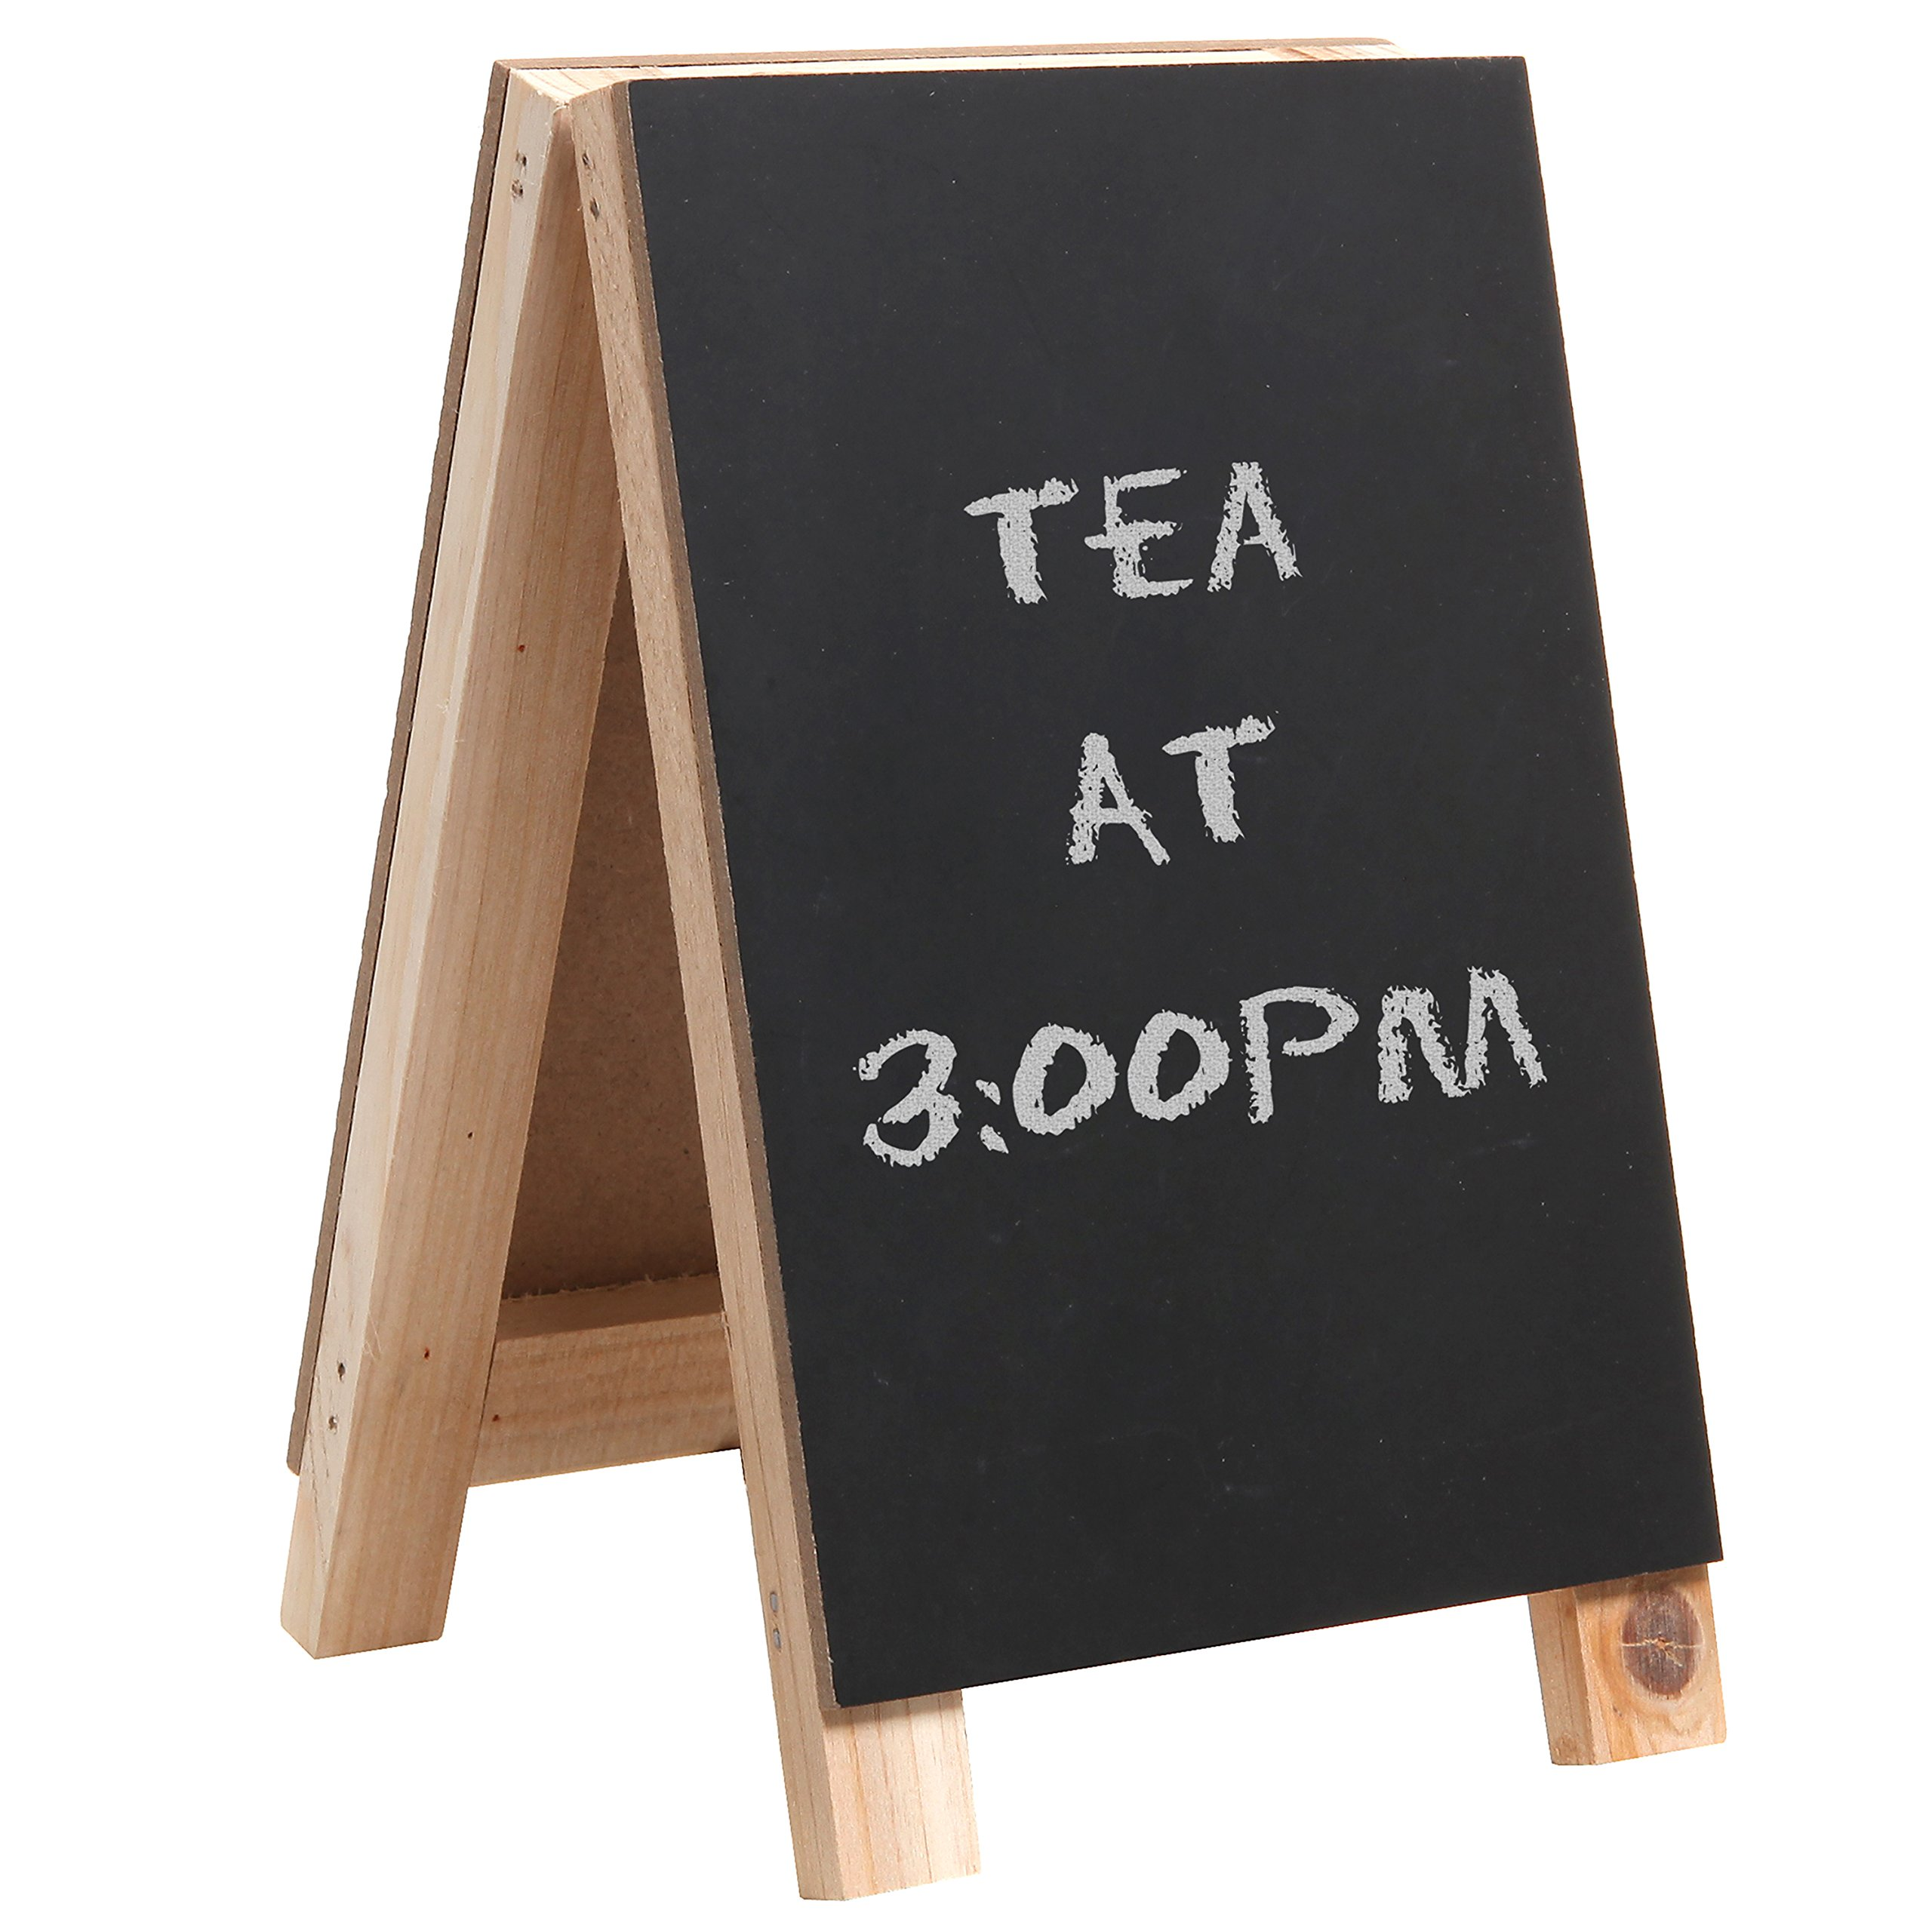 Perfect surfaces product display - Perfect Foryour Home Store Or Restaurant This Easel Style Chalkboard Features 2blackboard Surfaces